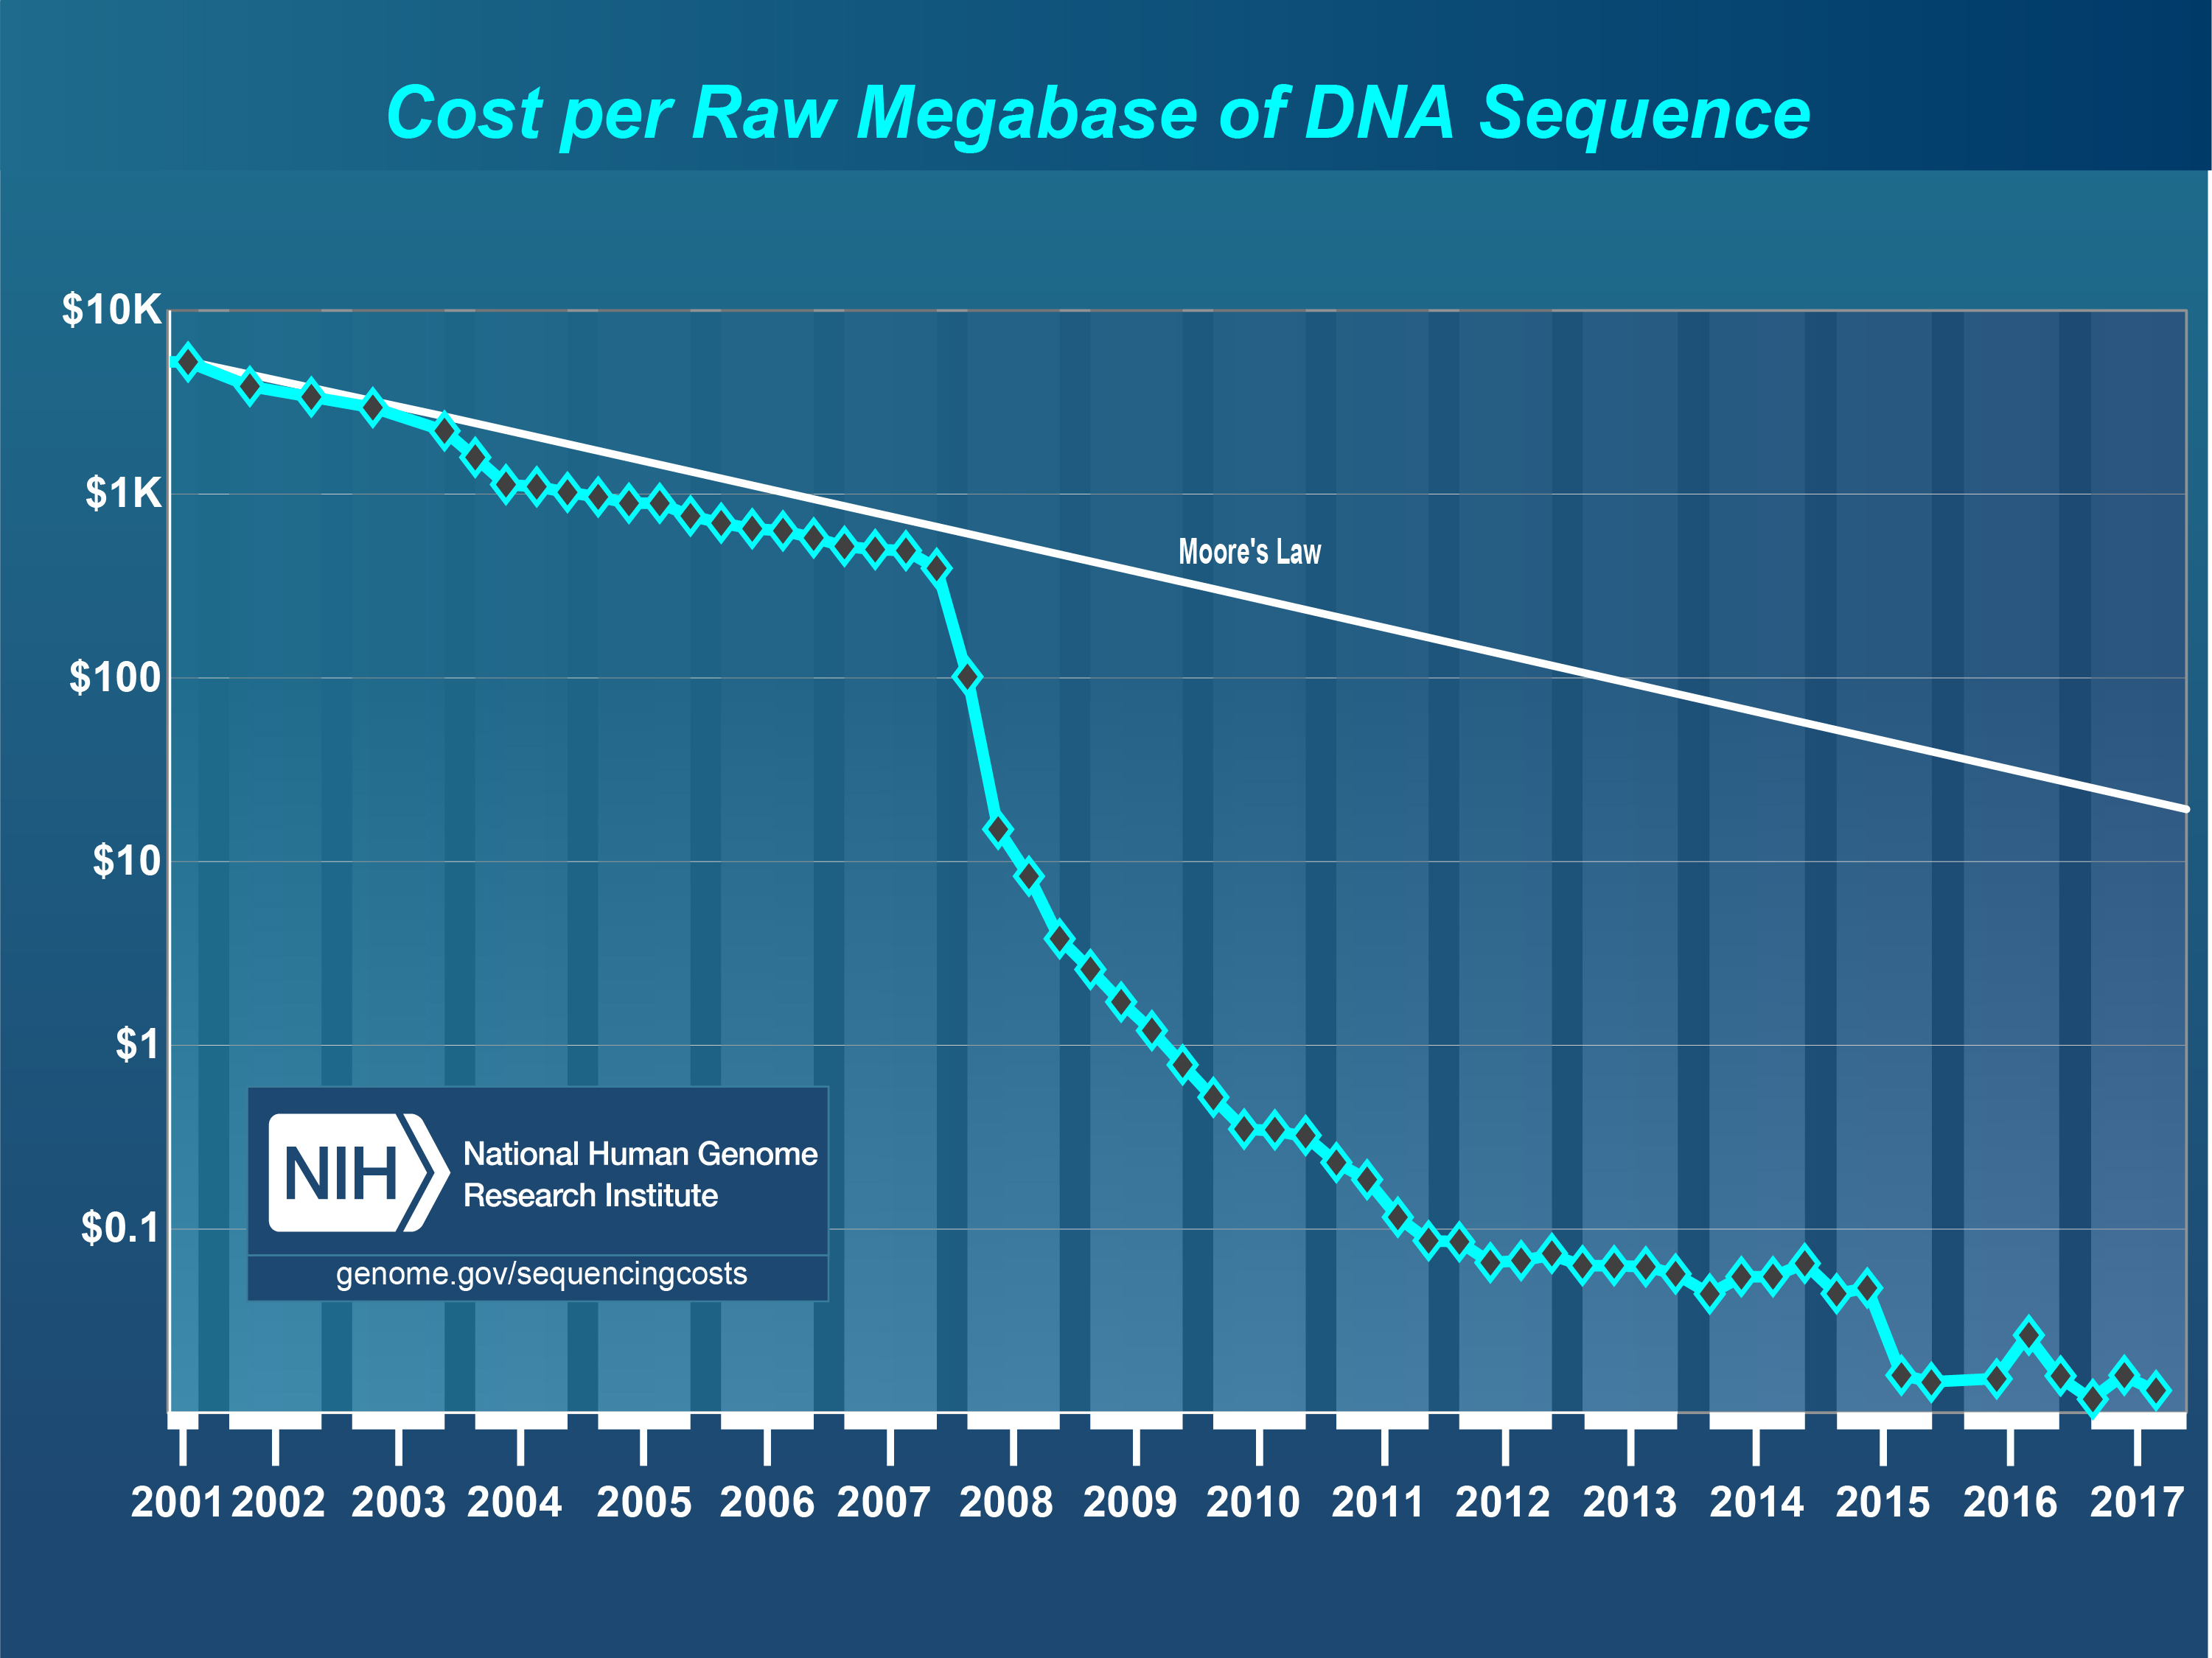 Cost per raw megabase of DNA sequence.